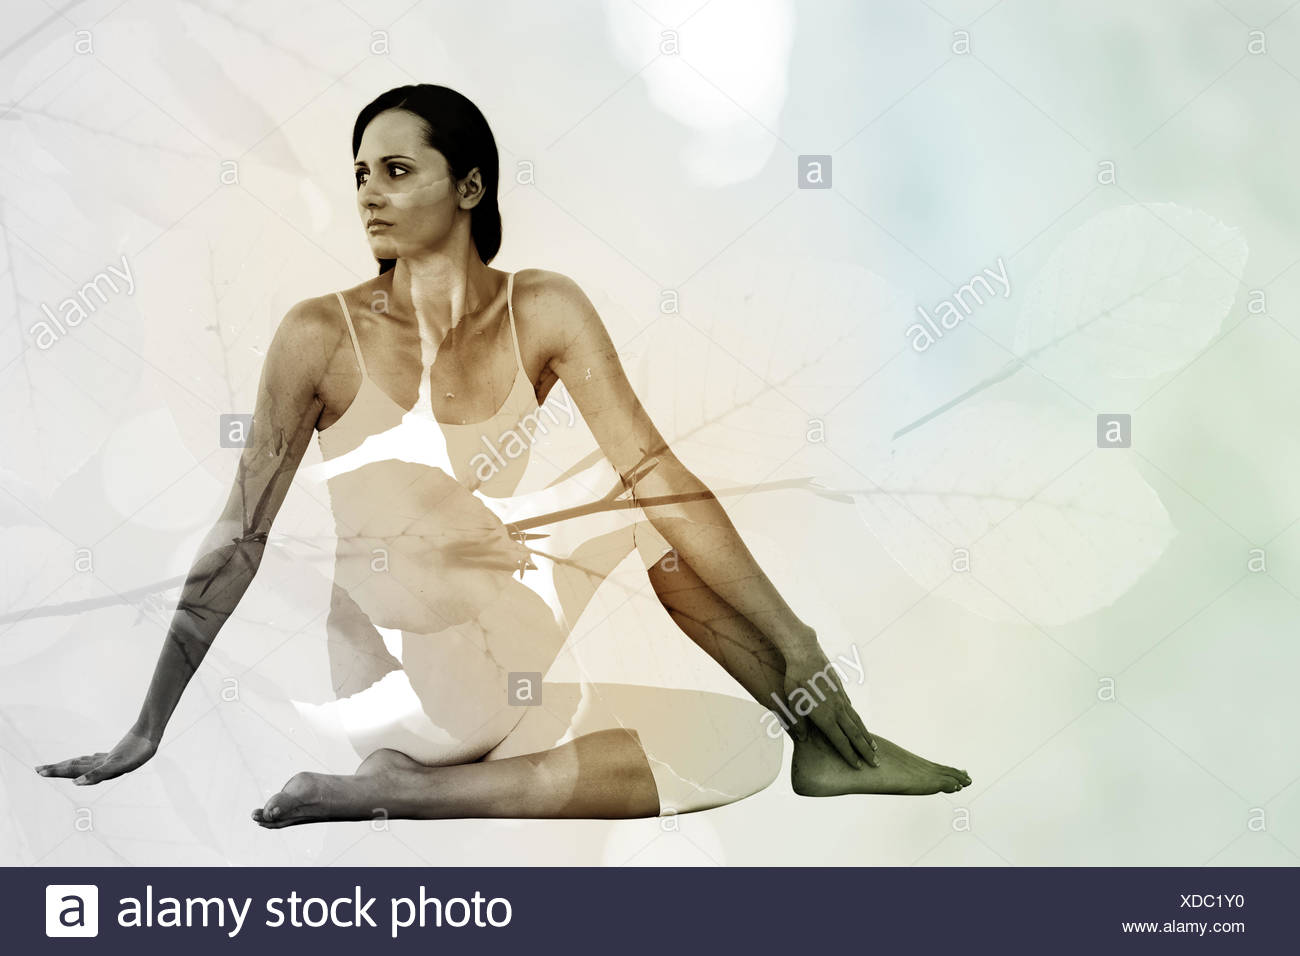 Composite image of fit woman doing the half spinal twist pose in fitness studio - Stock Image